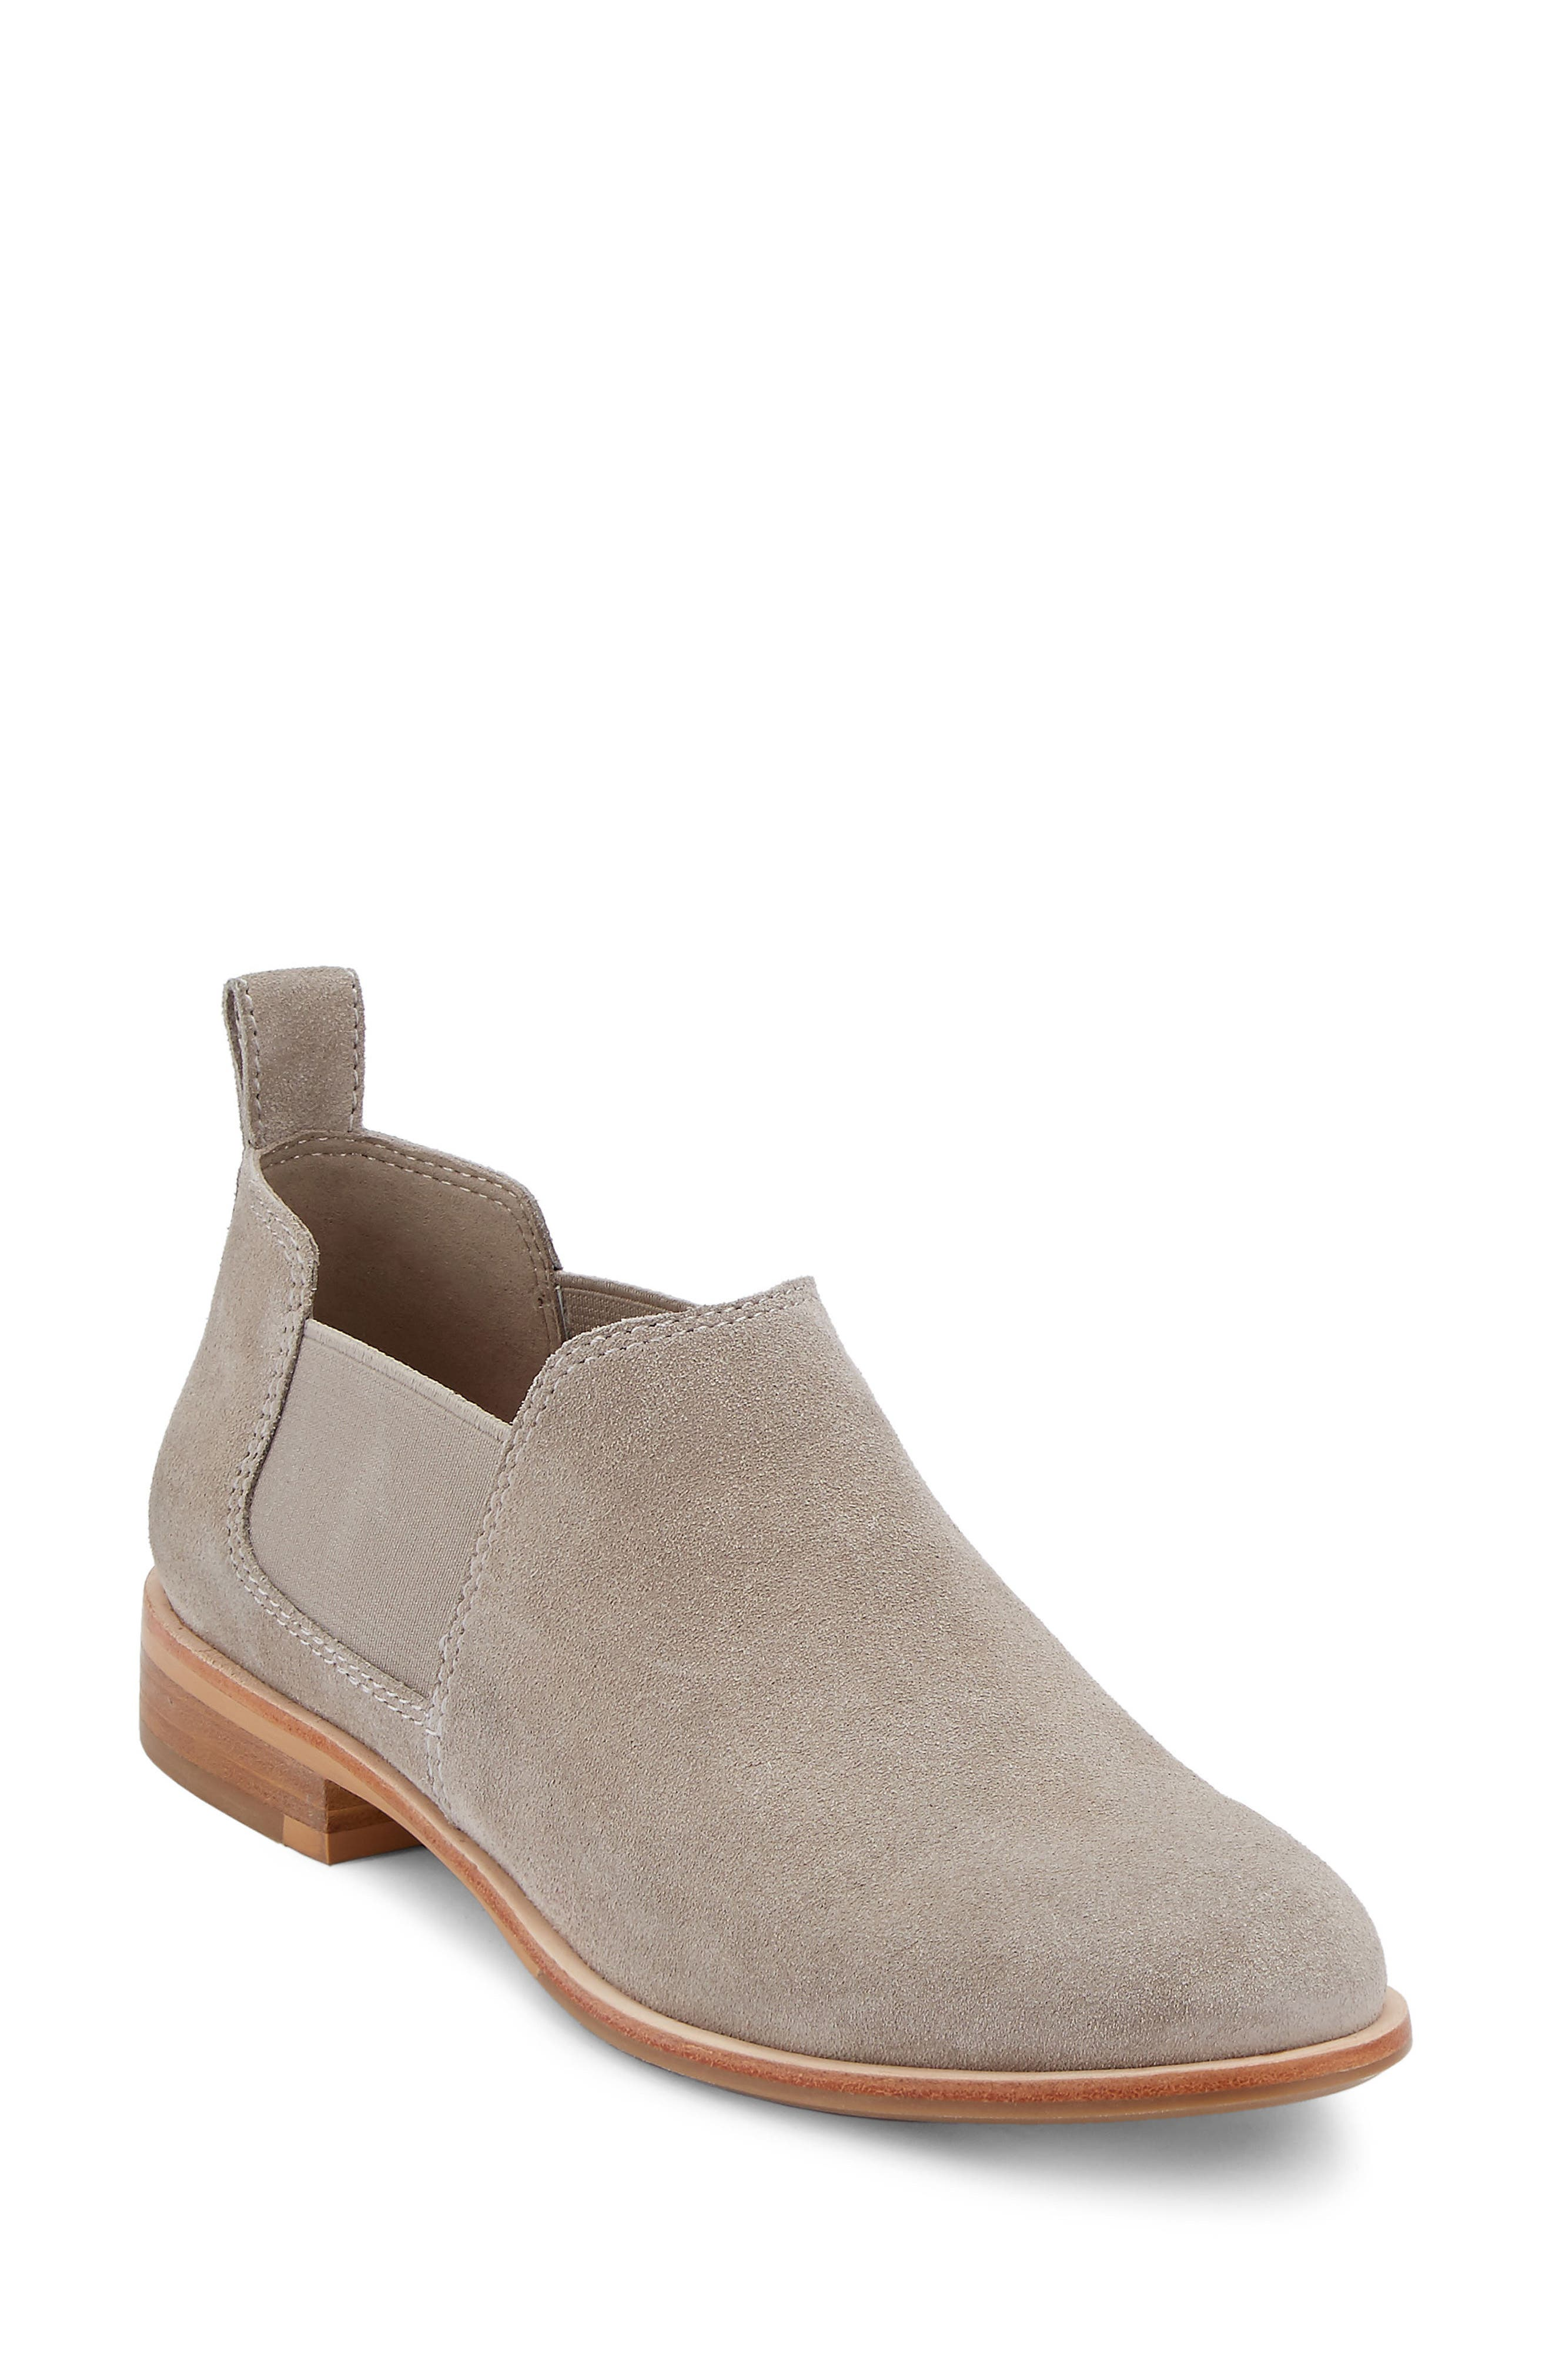 Alternate Image 1 Selected - G.H. Bass & Co. Brooke Chelsea Bootie (Women)